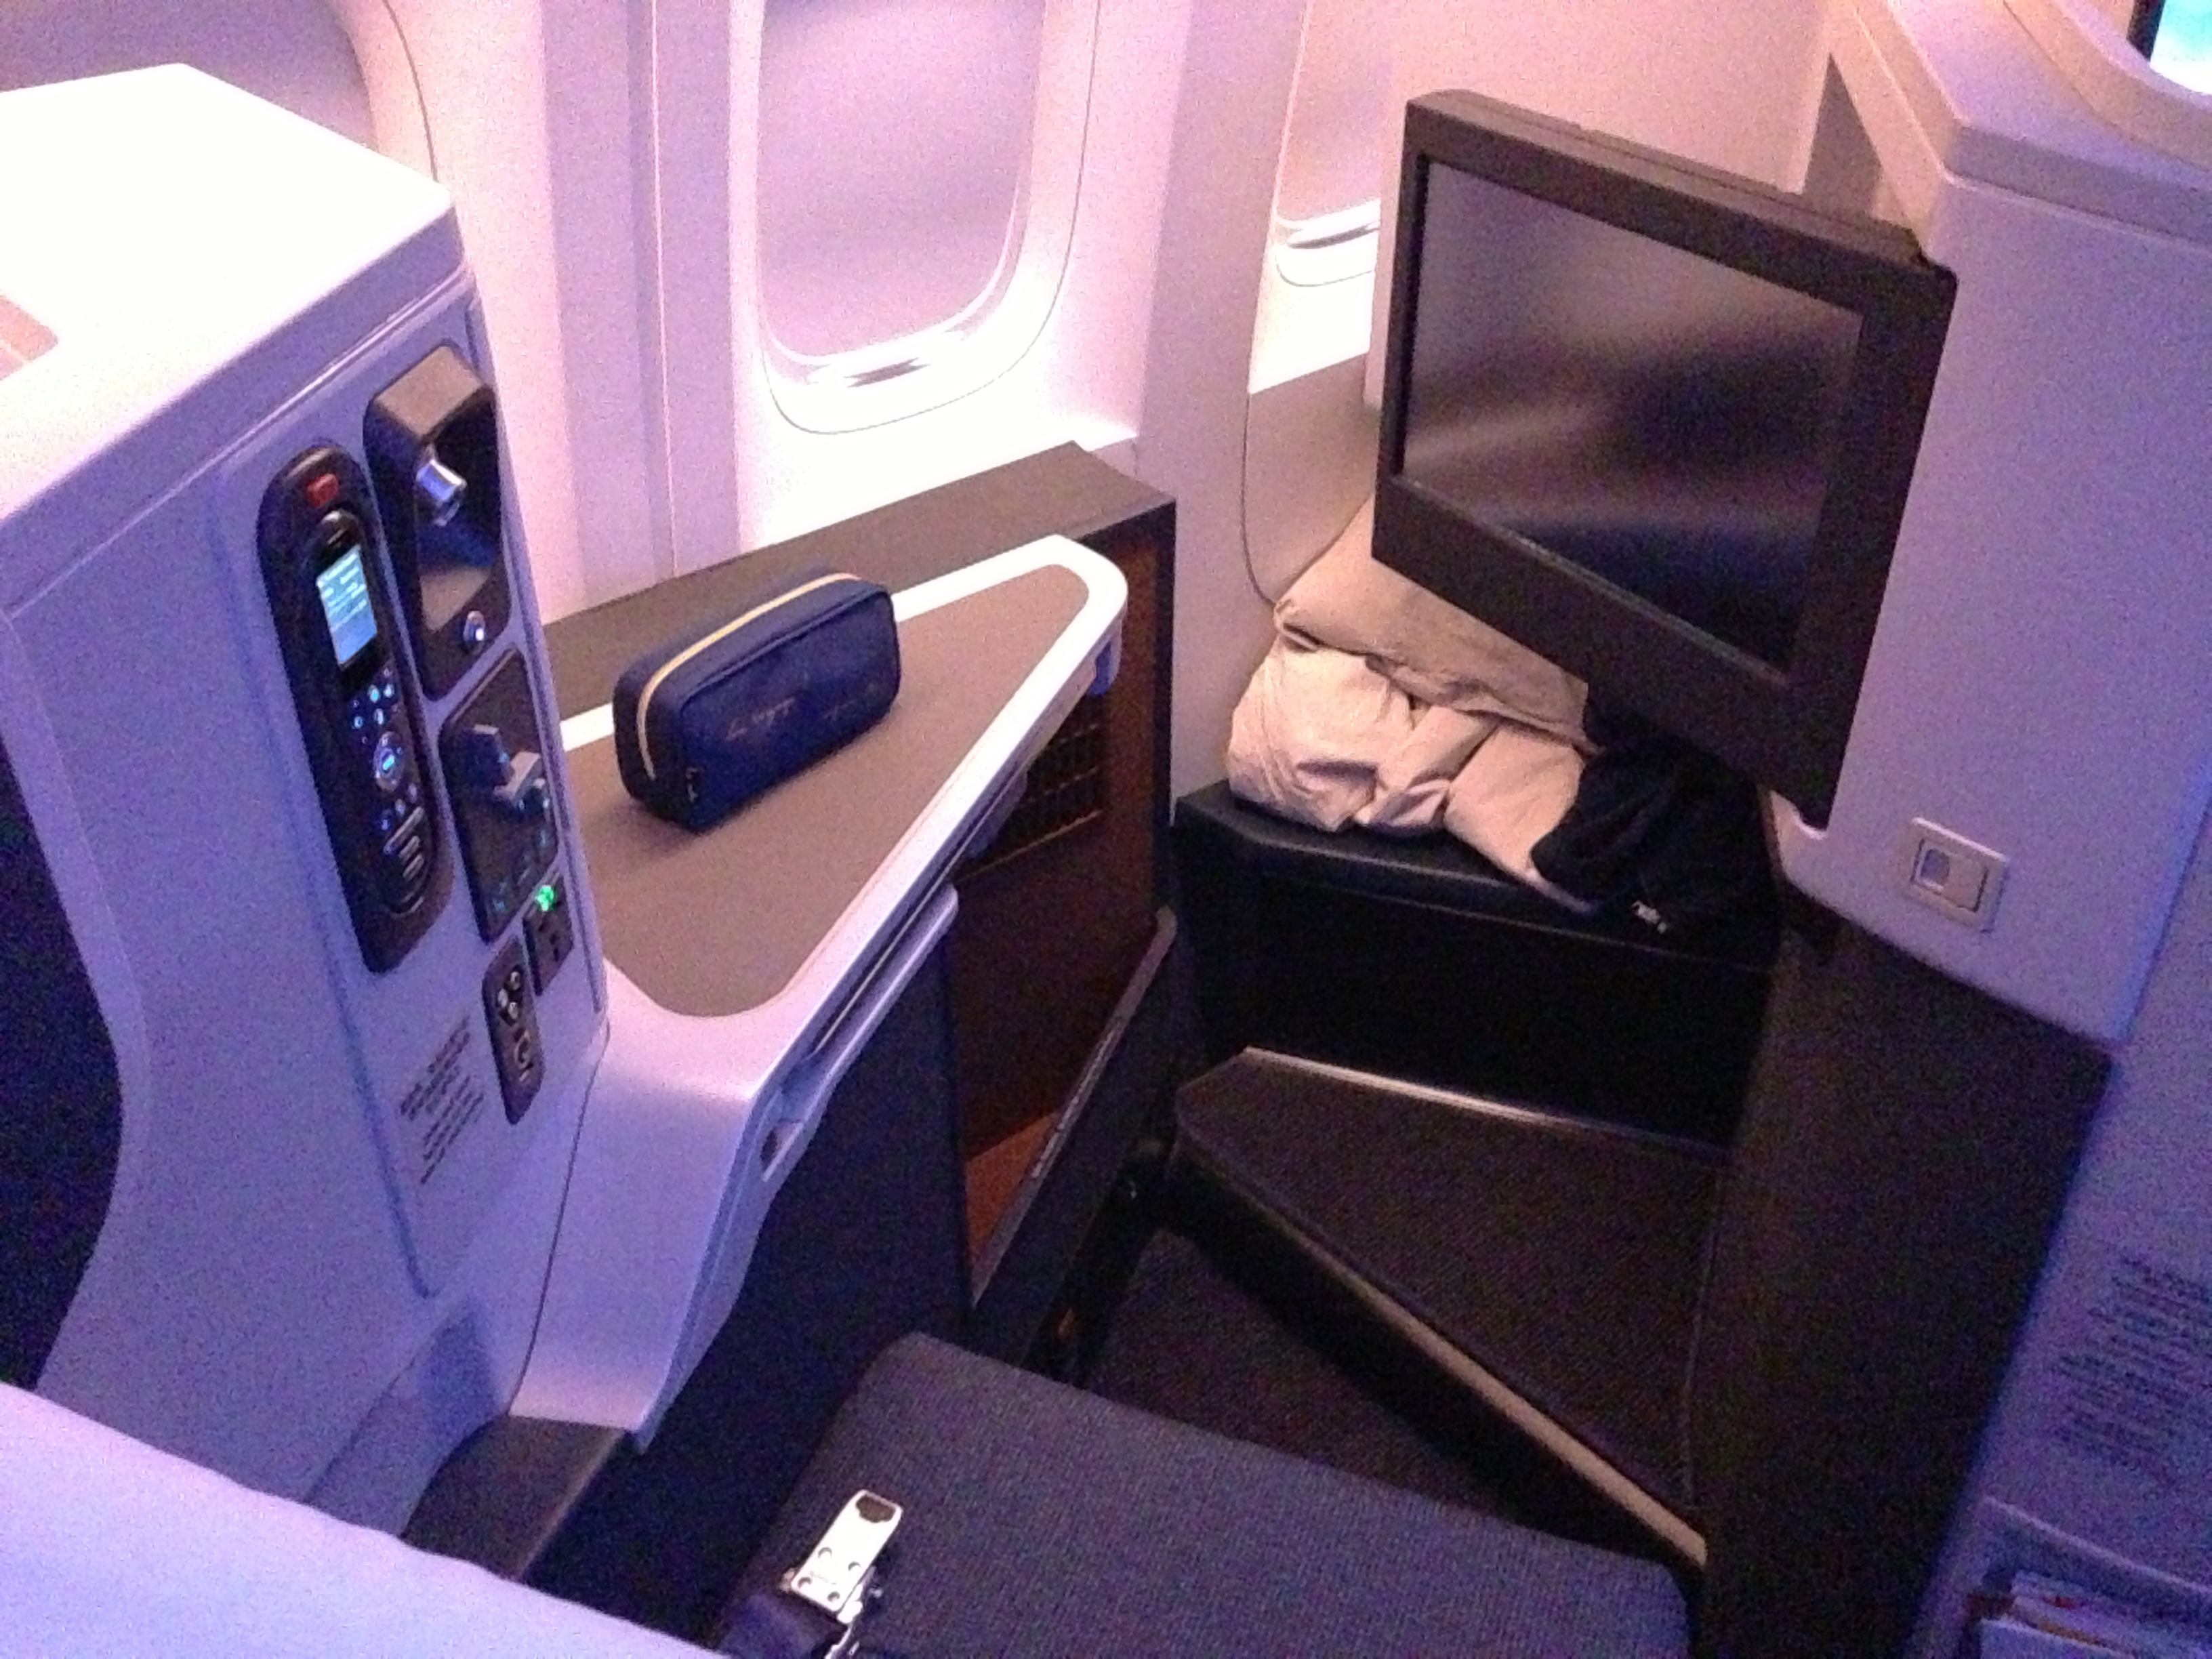 File:Cathay Pacific 77W business class seat.JPG ...